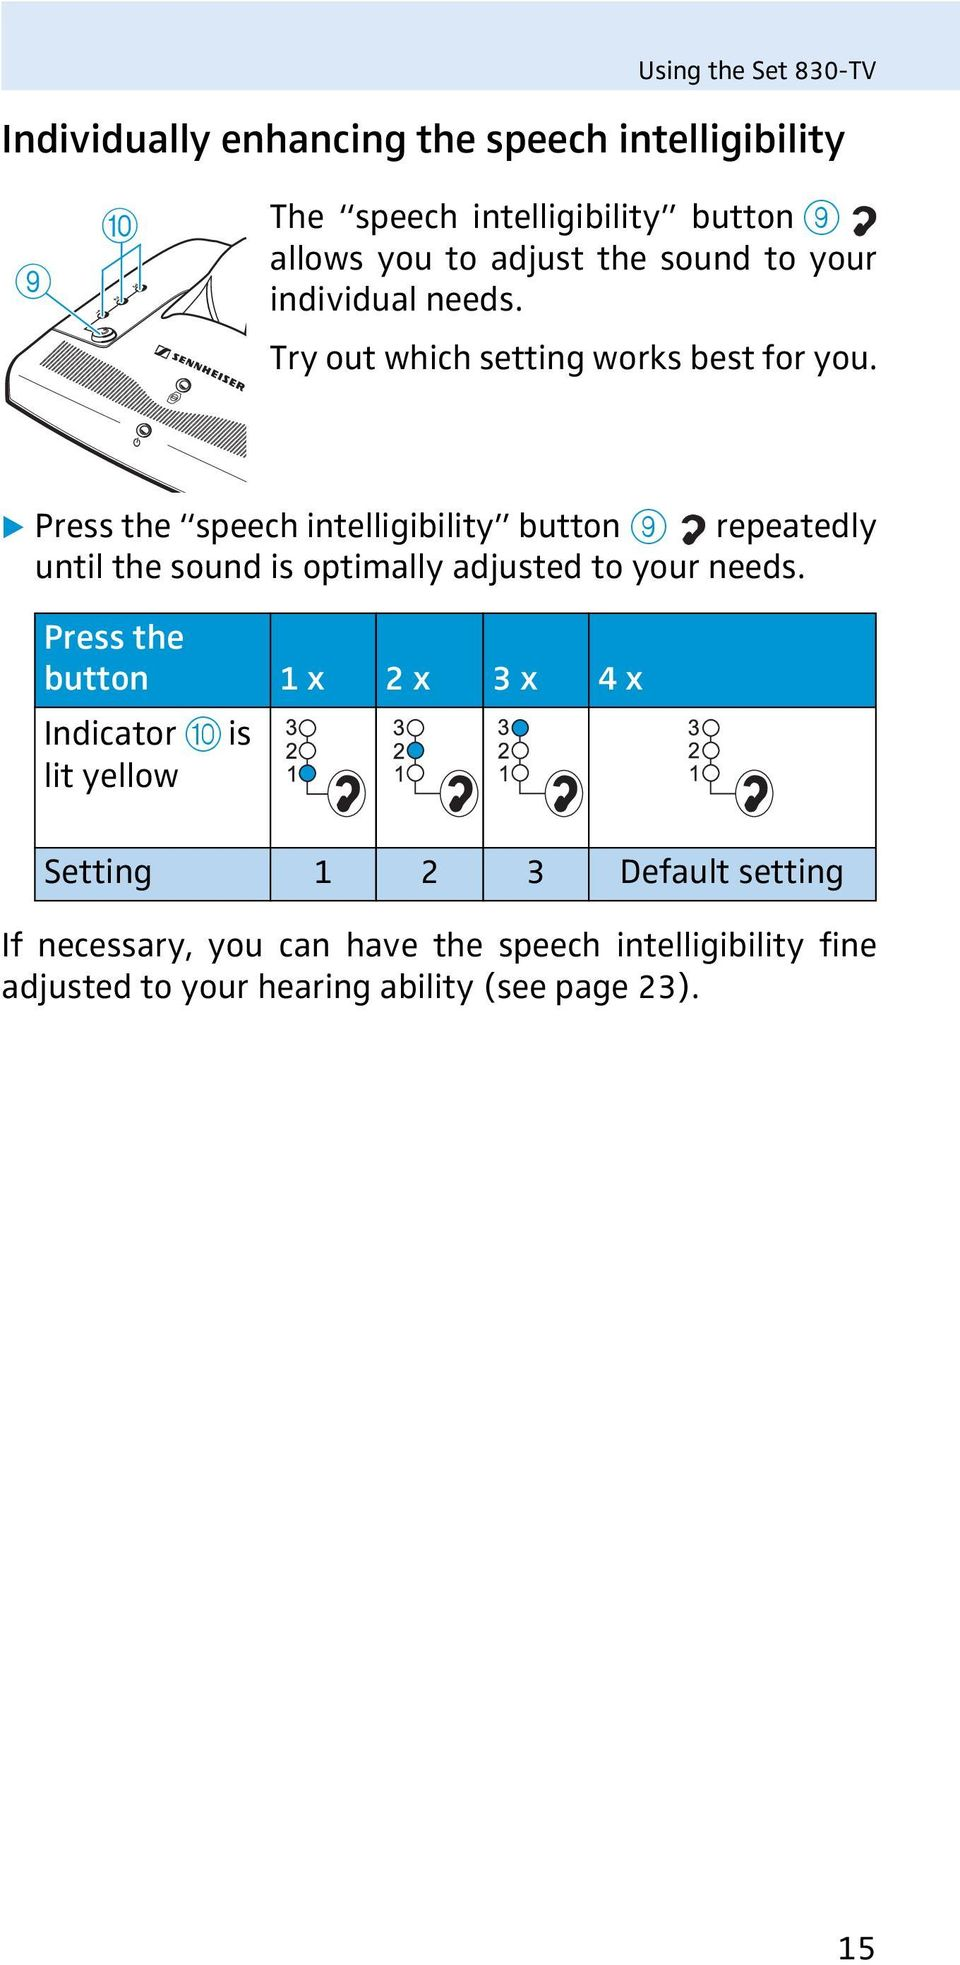 Press the speech intelligibility button 9 repeatedly until the sound is optimally adjusted to your needs.